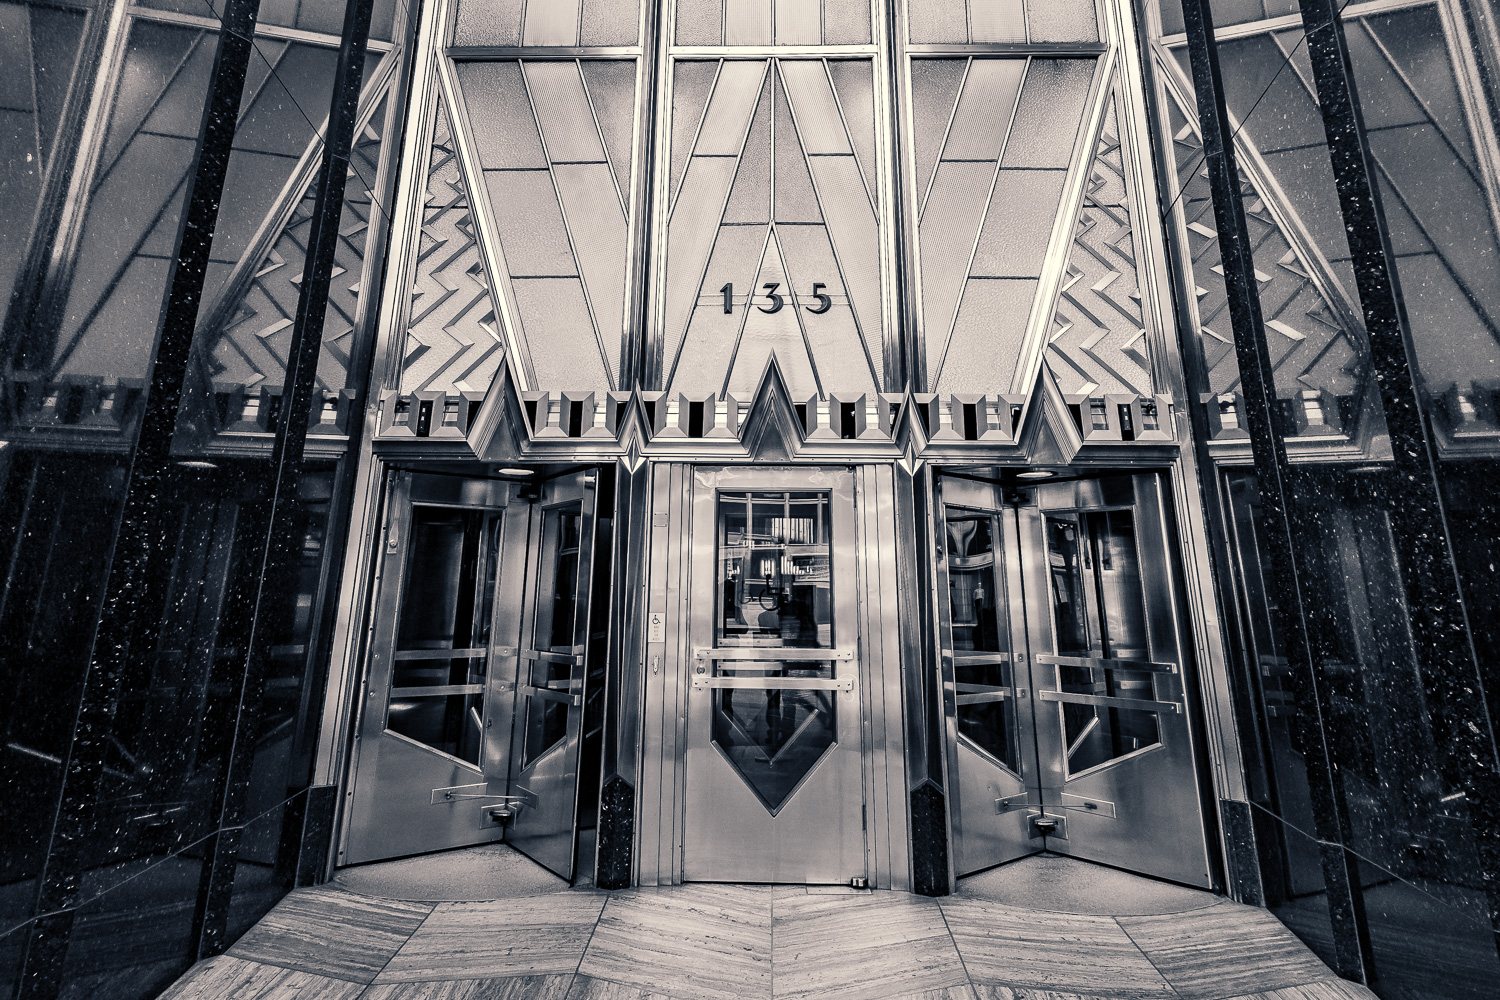 The Chrysler Building entrance